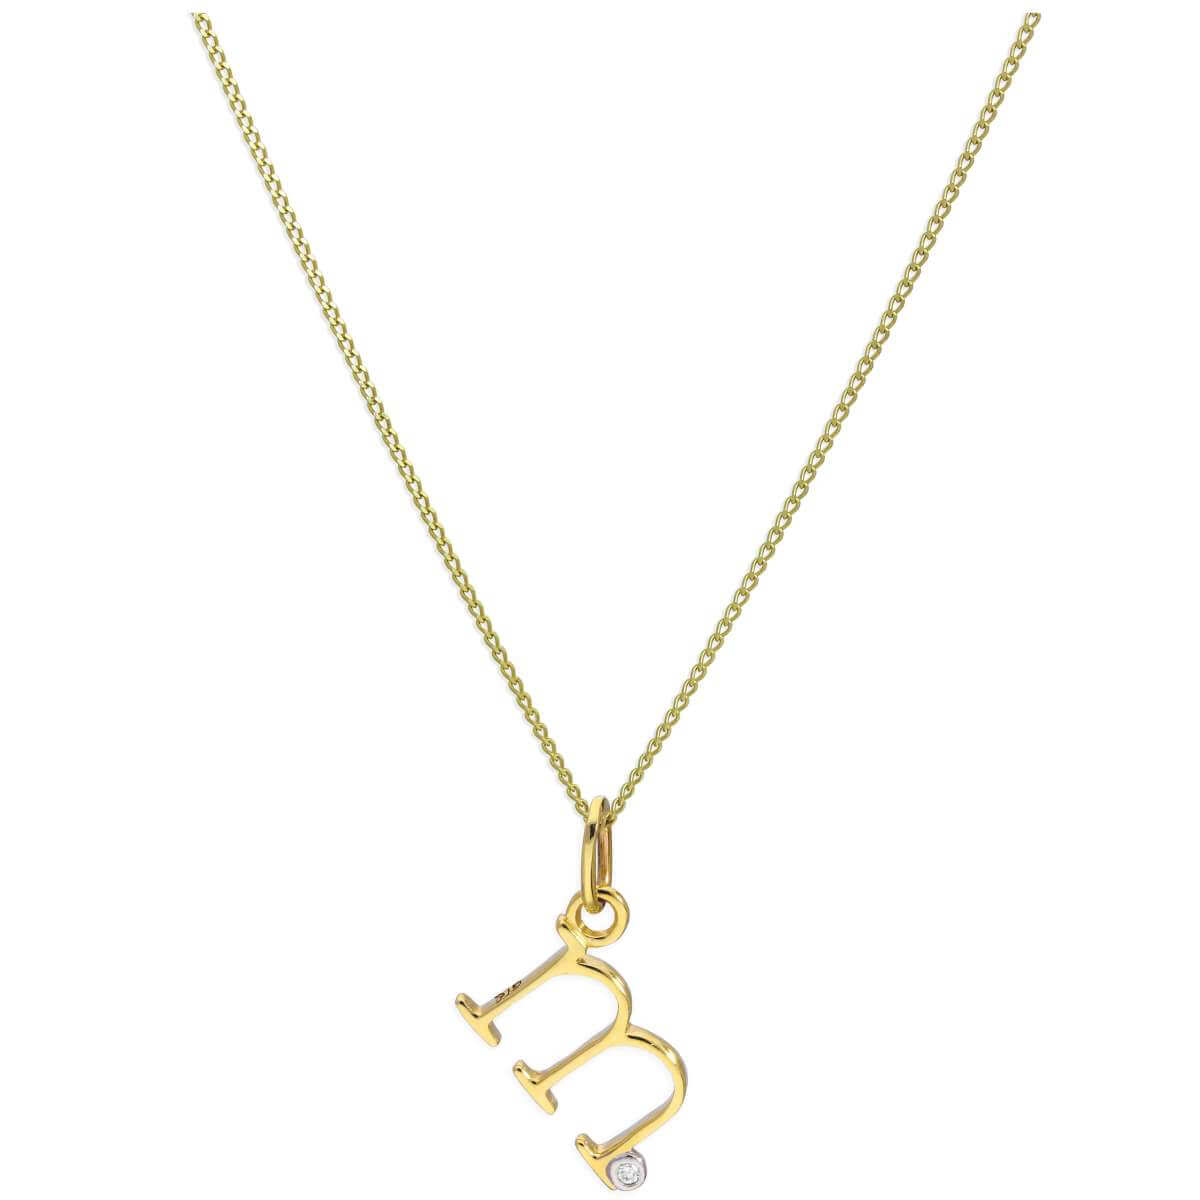 9ct Yellow Gold Single Stone Diamond 0.4 points Letter M Necklace Pendant 16 - 20 Inches